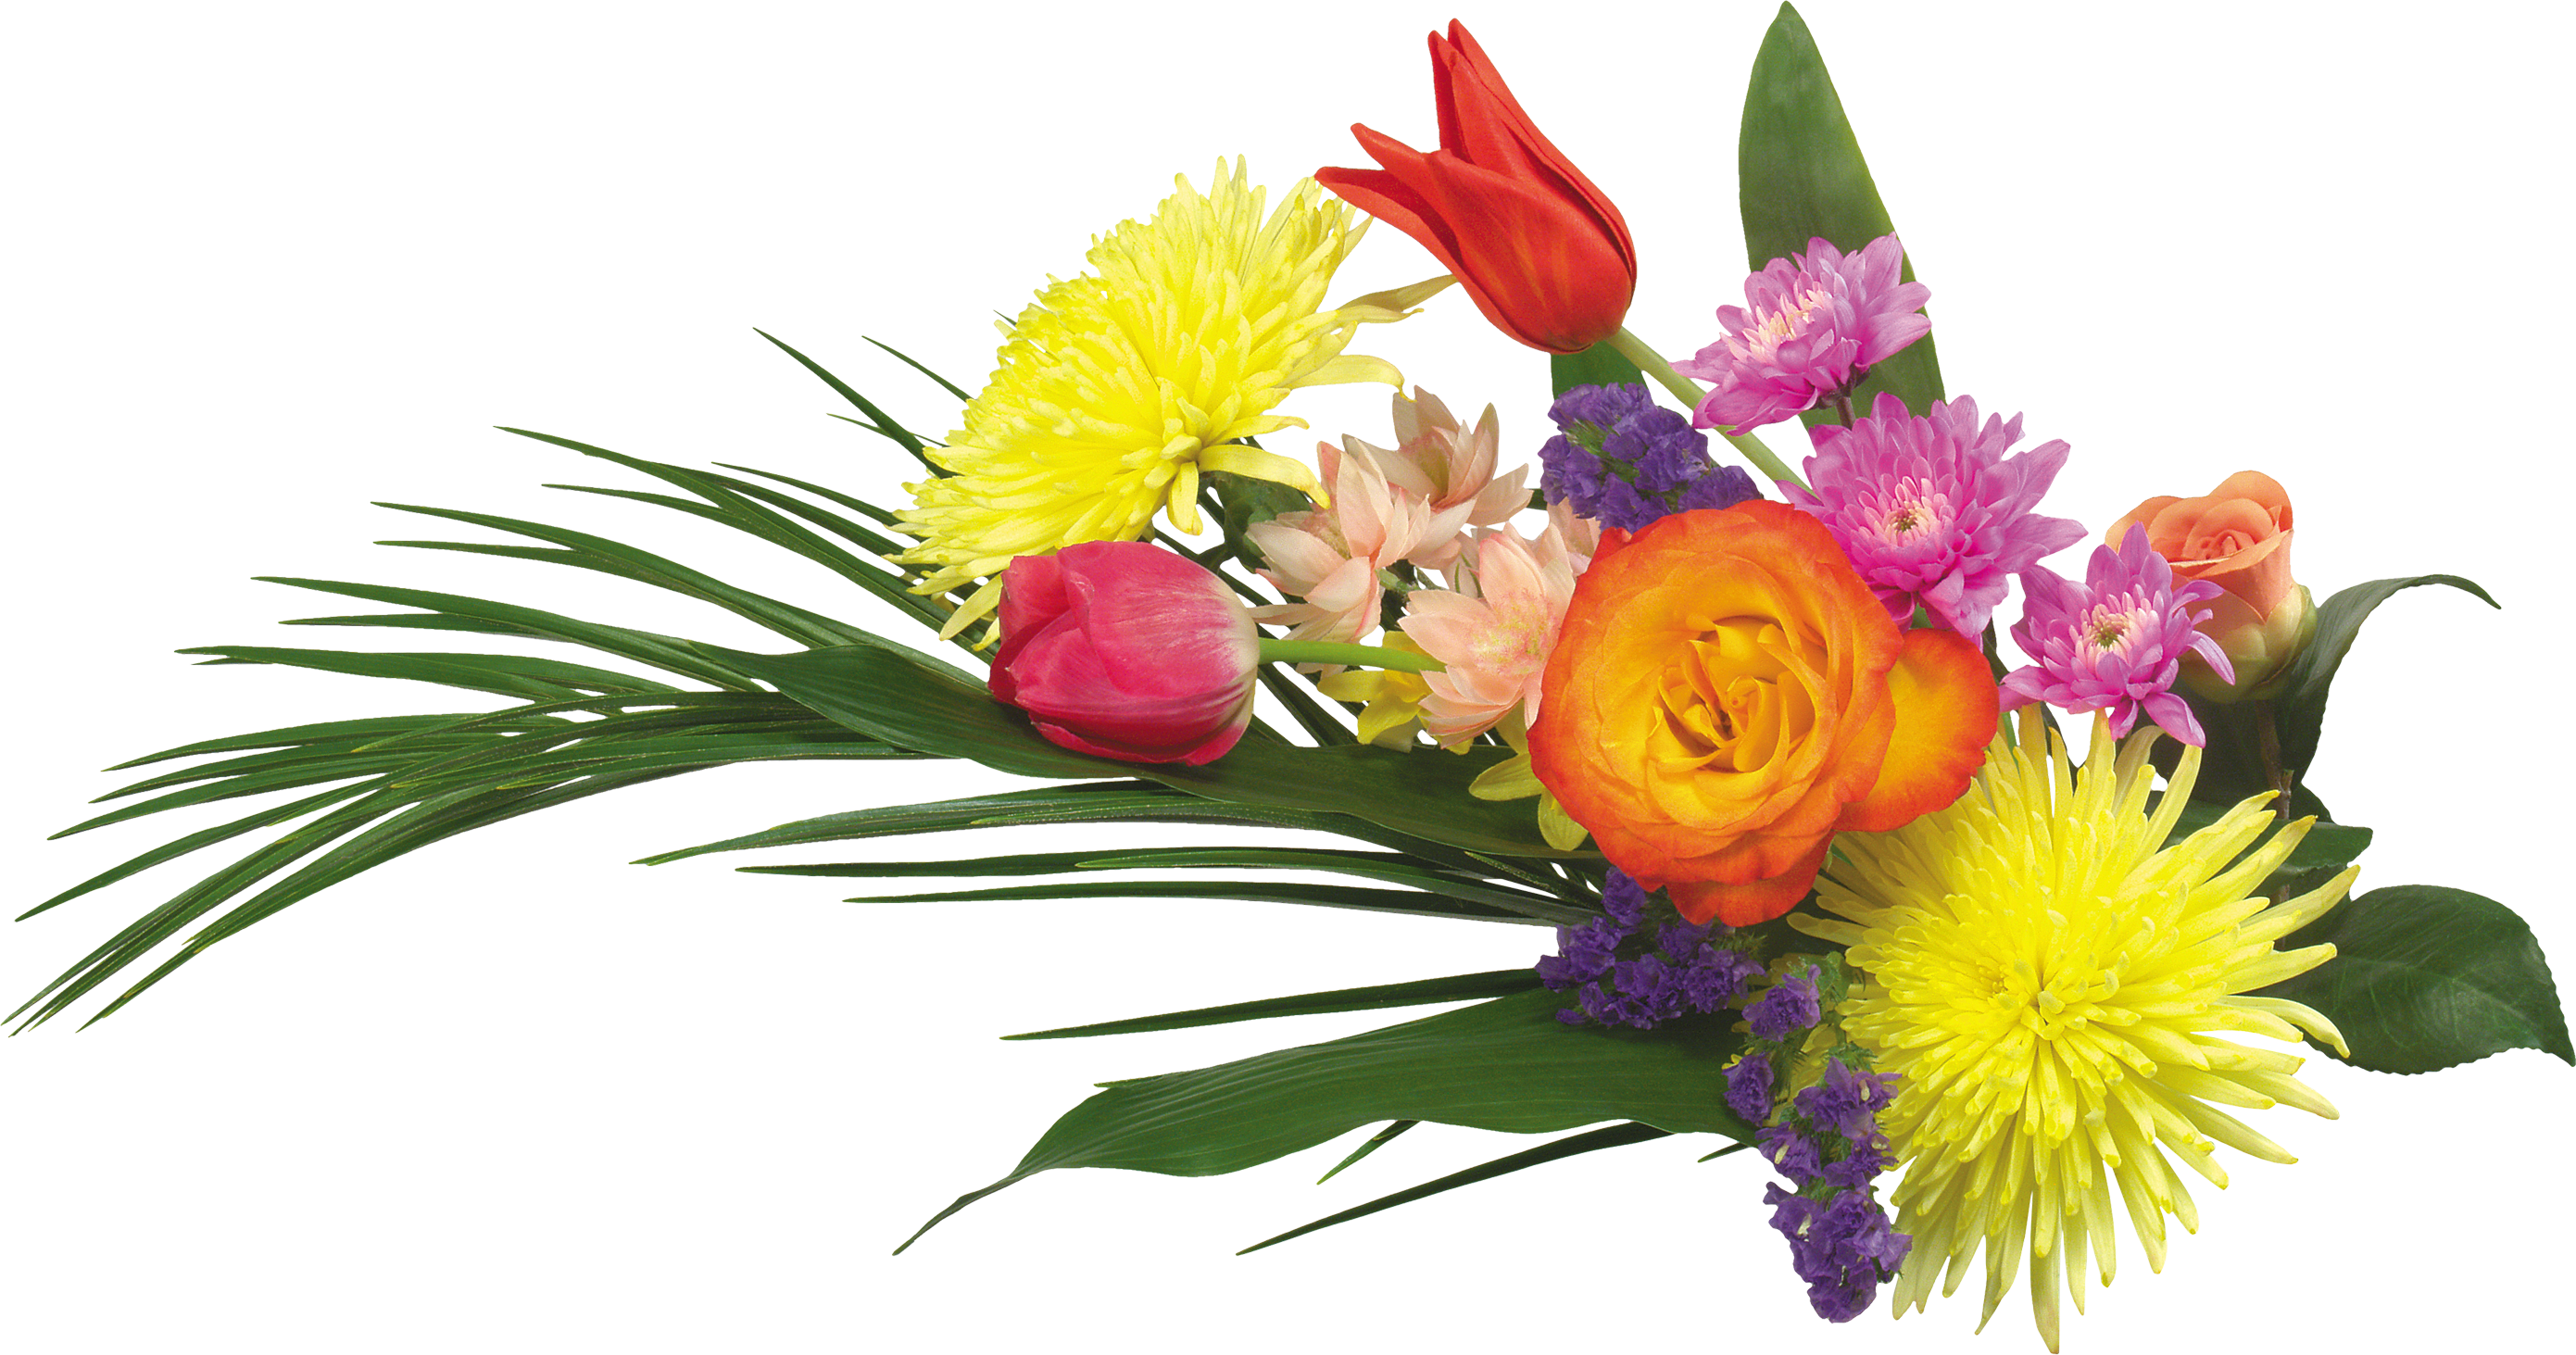 Png flower bouquet various. Flowers